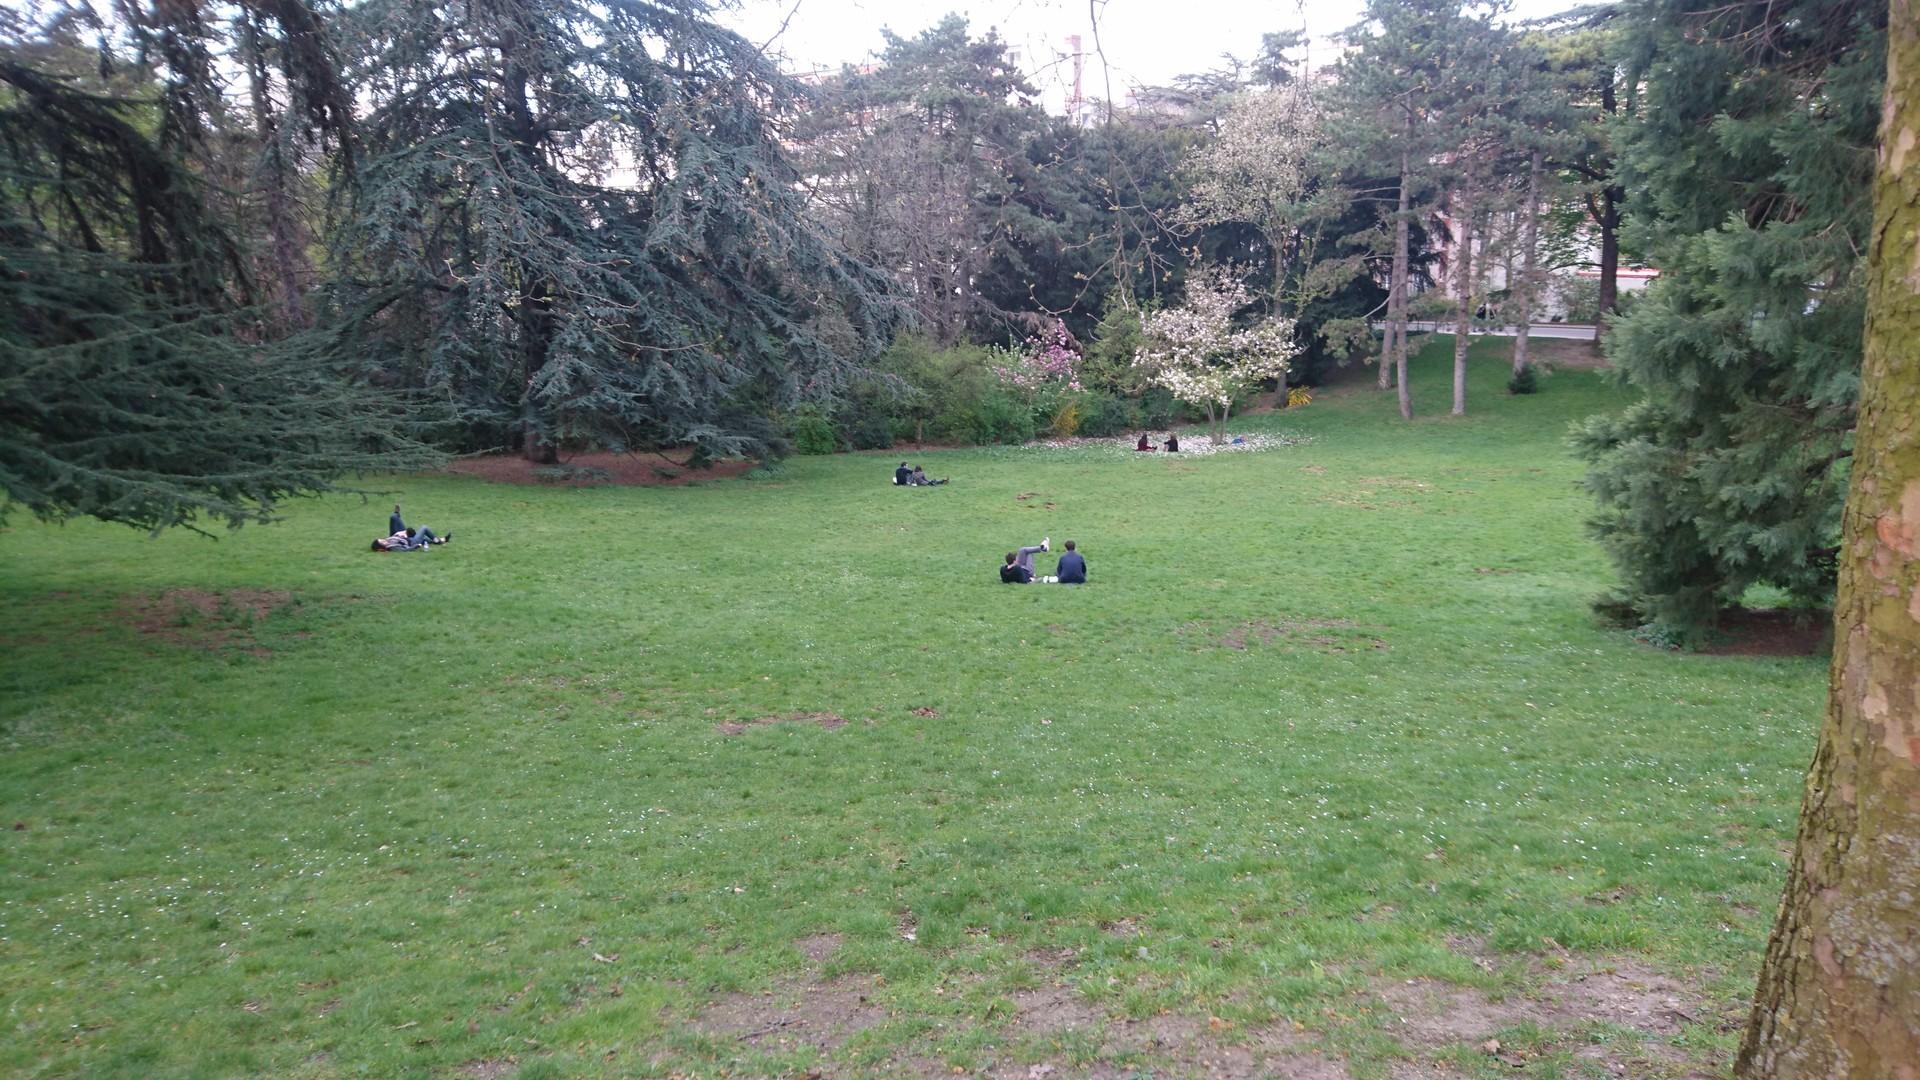 Green space; not much to see